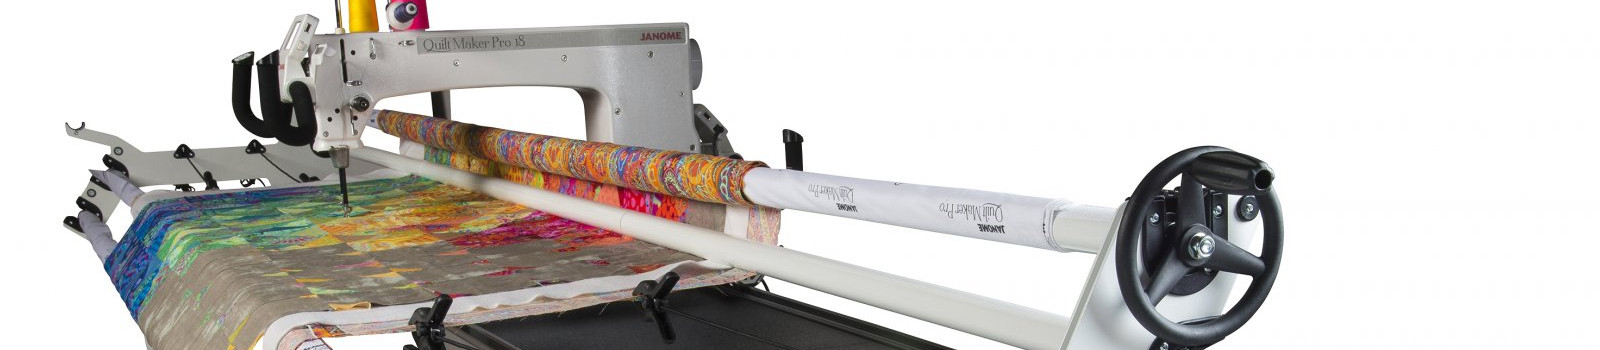 Janome Quilt Maker Pro Embroidery Machine